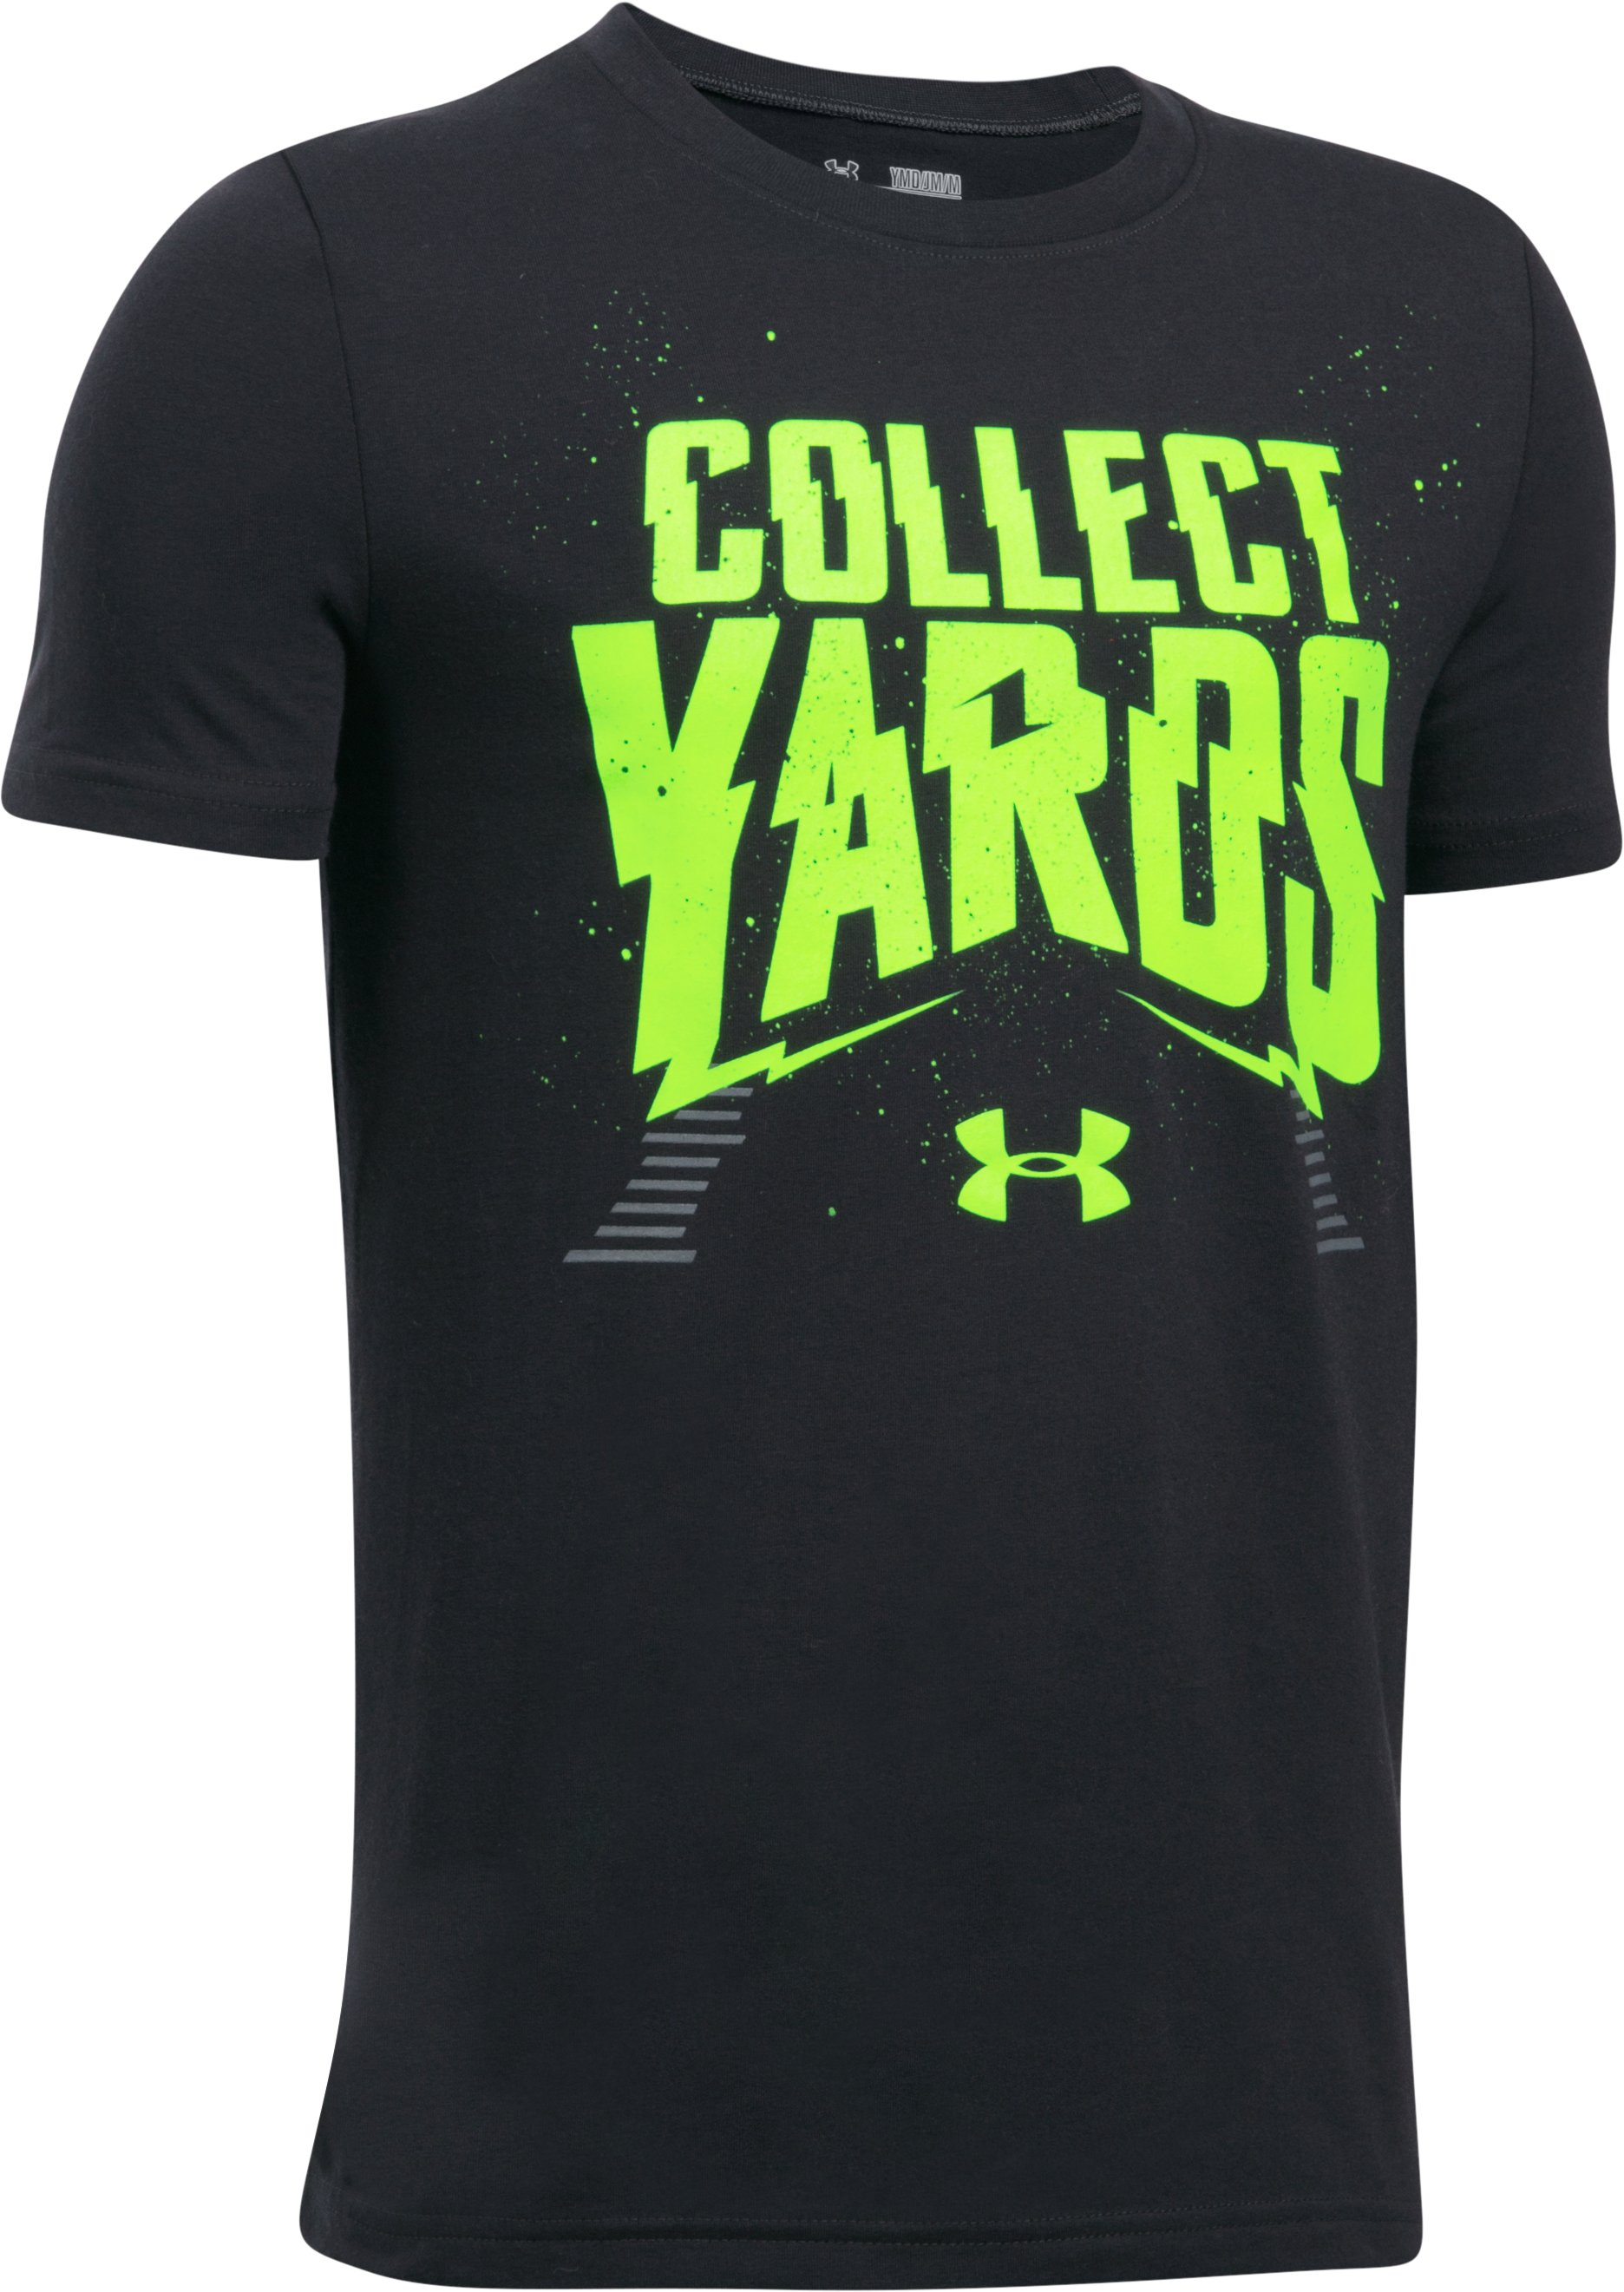 Boys' UA Collect Yards T-Shirt, Black